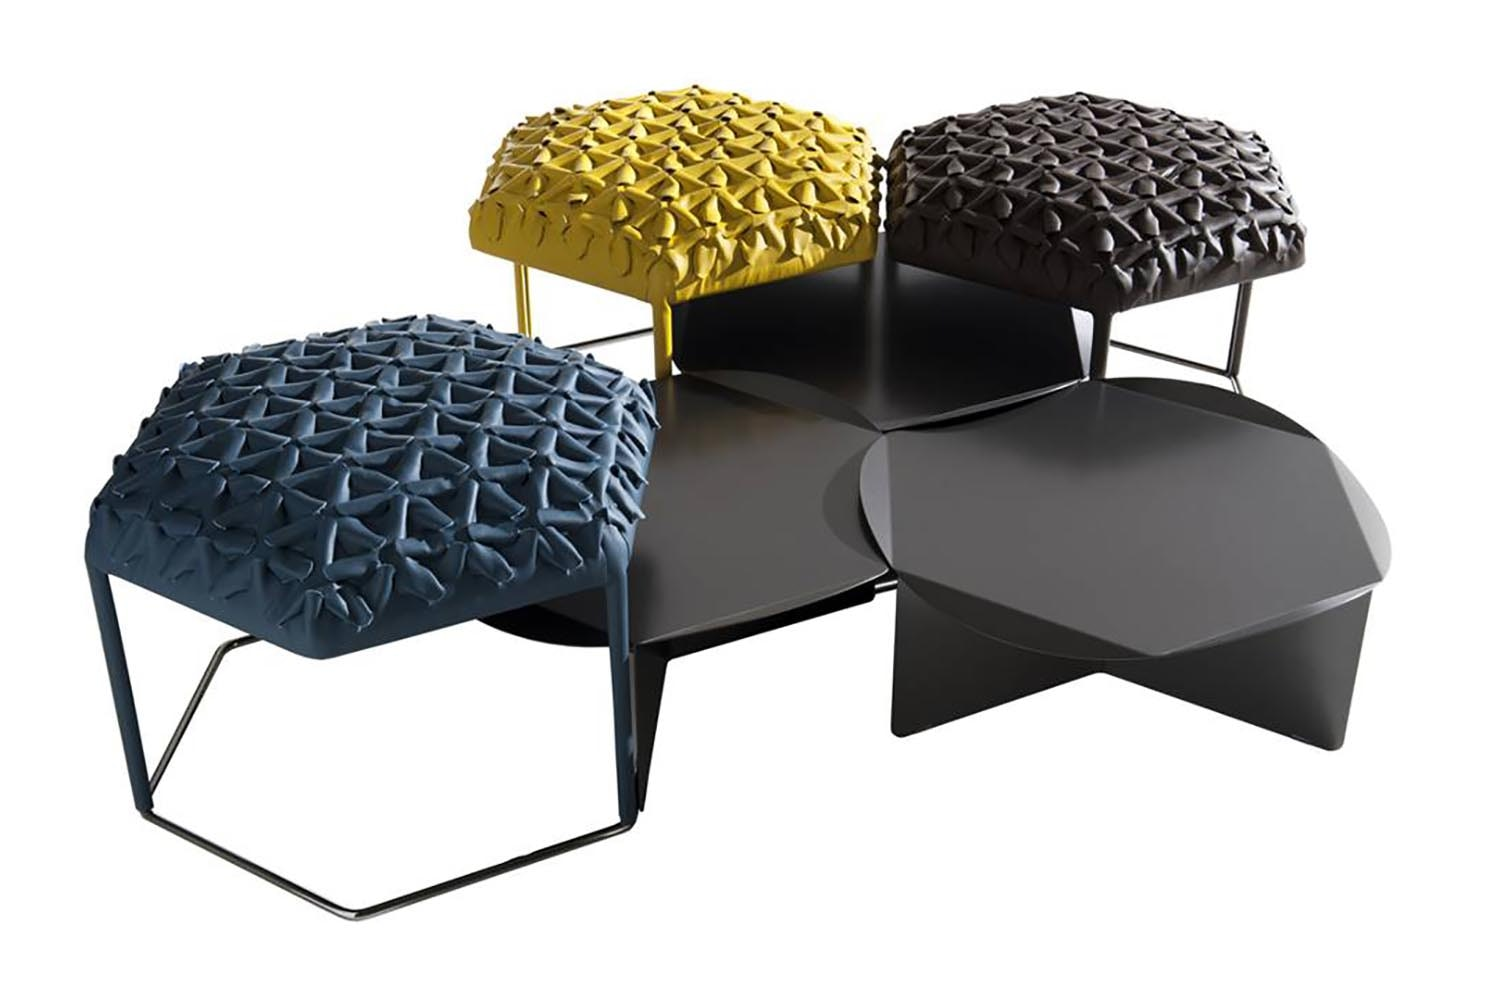 Hive by Atelier Oi for B&B Italia  Space Furniture